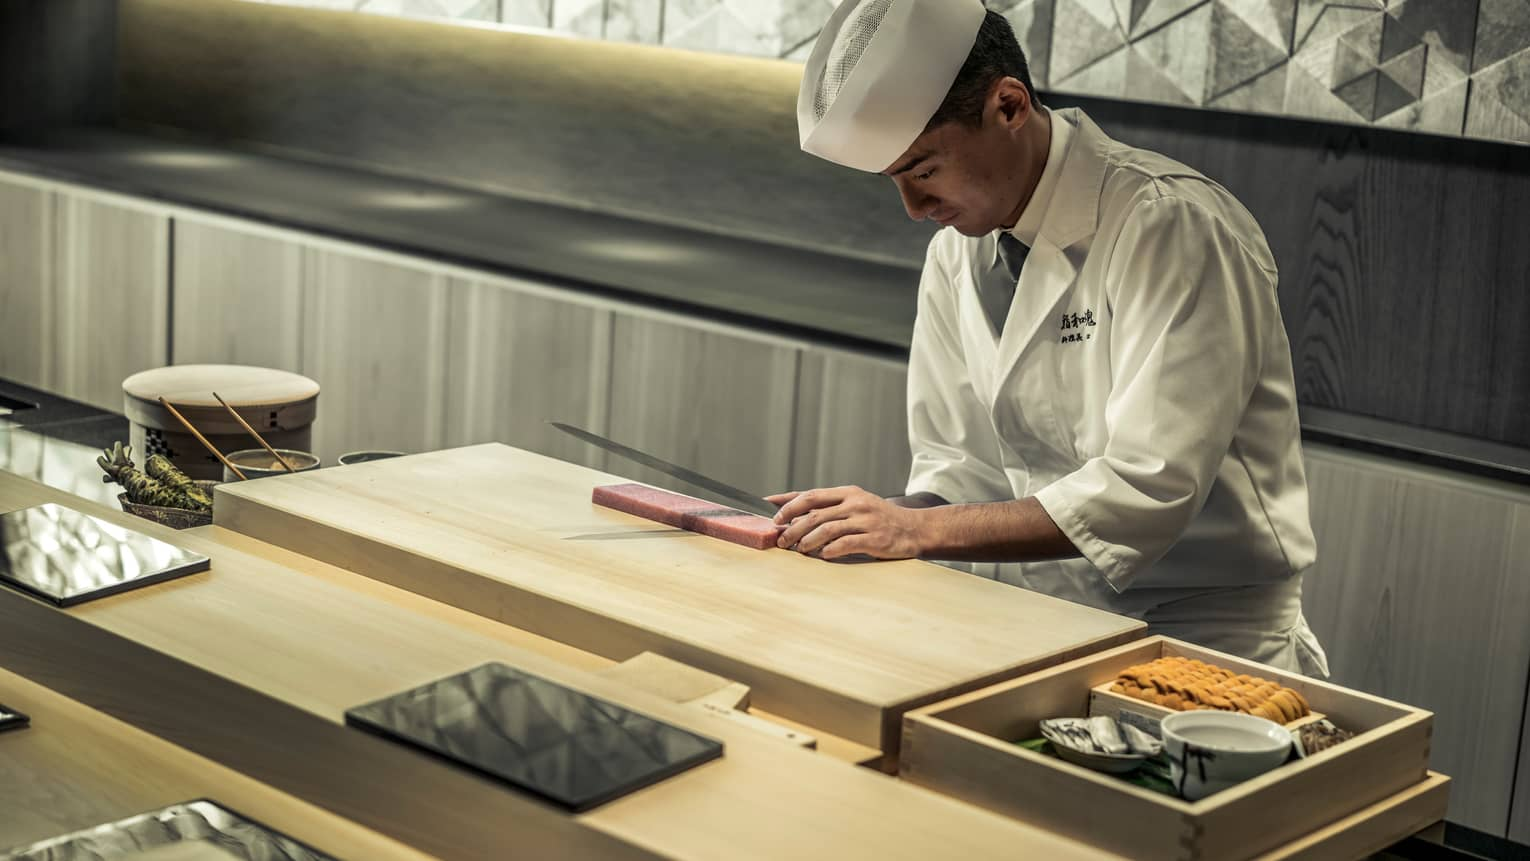 Sushi Wakon chef slices raw fish on wood board behind counter